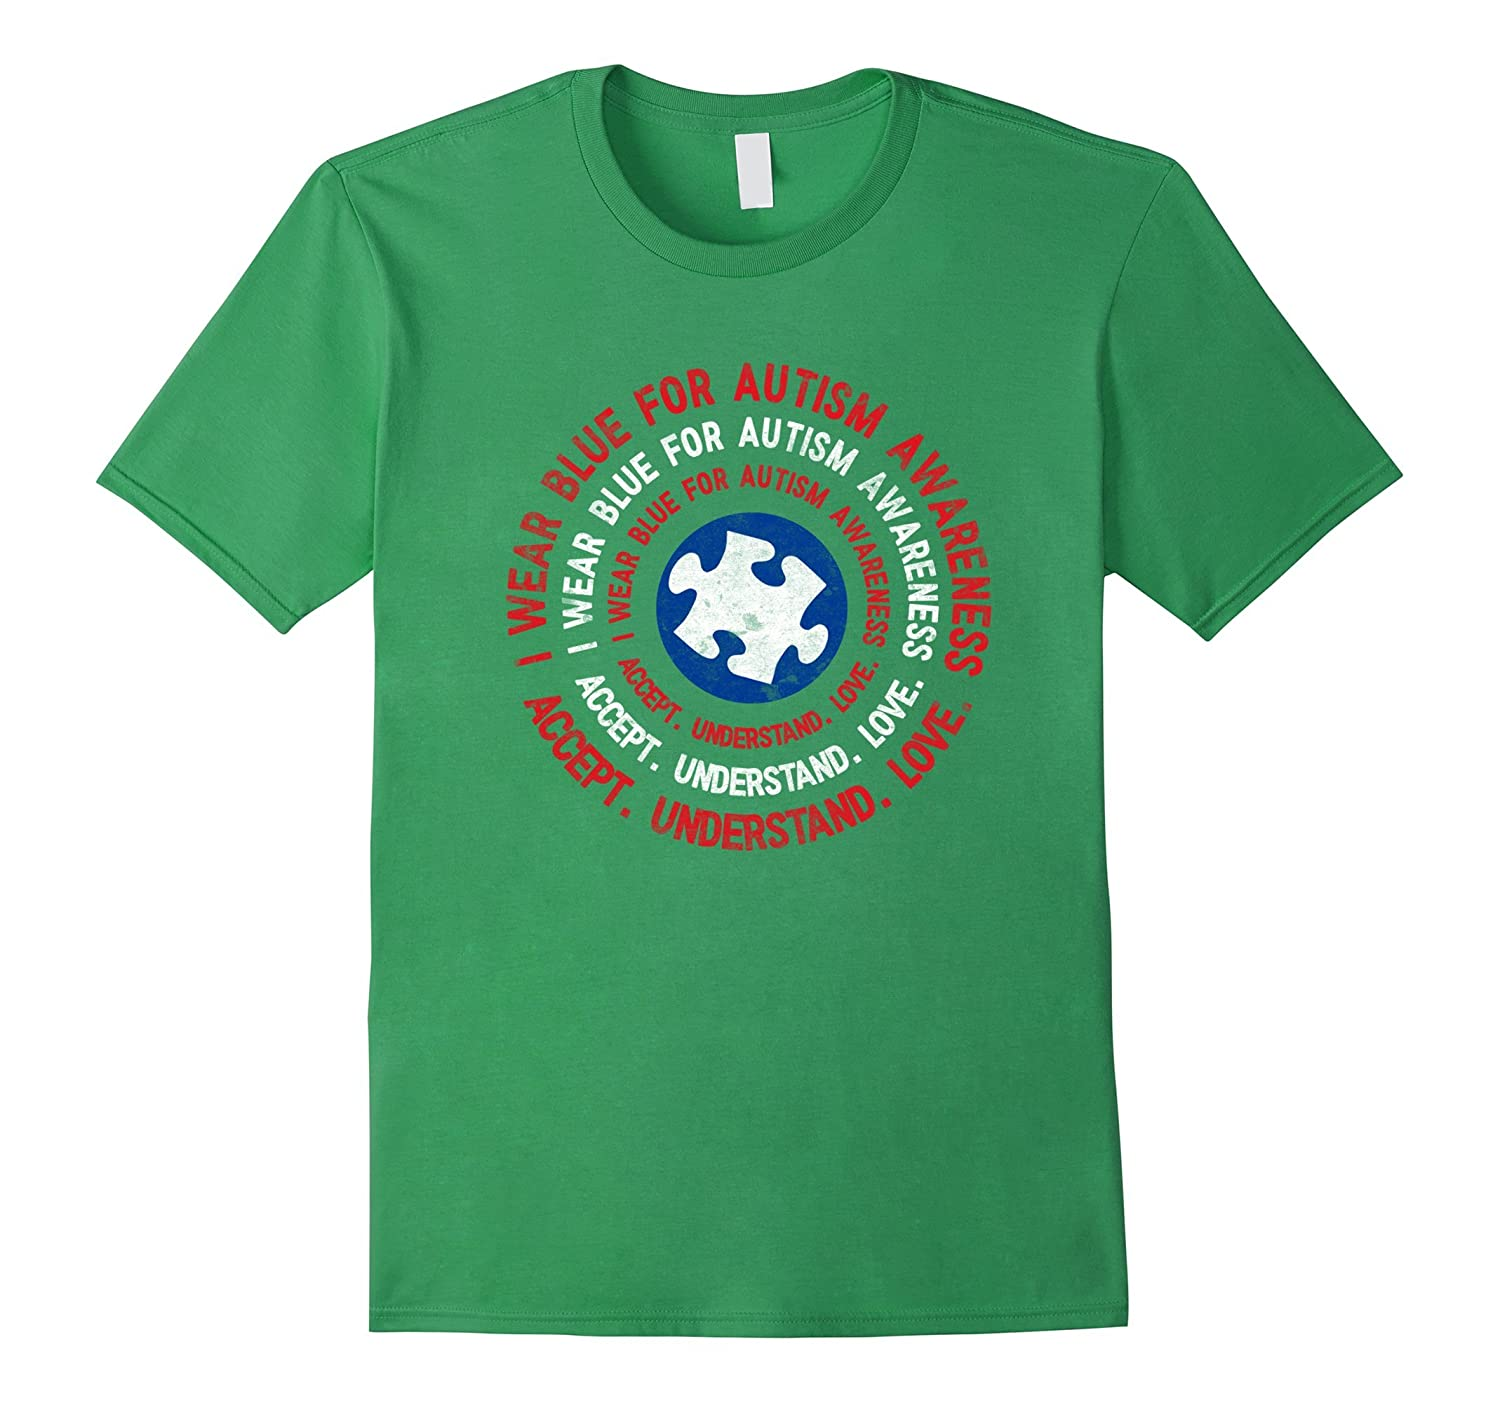 I wear blue for autism awareness superhero style T-shirt